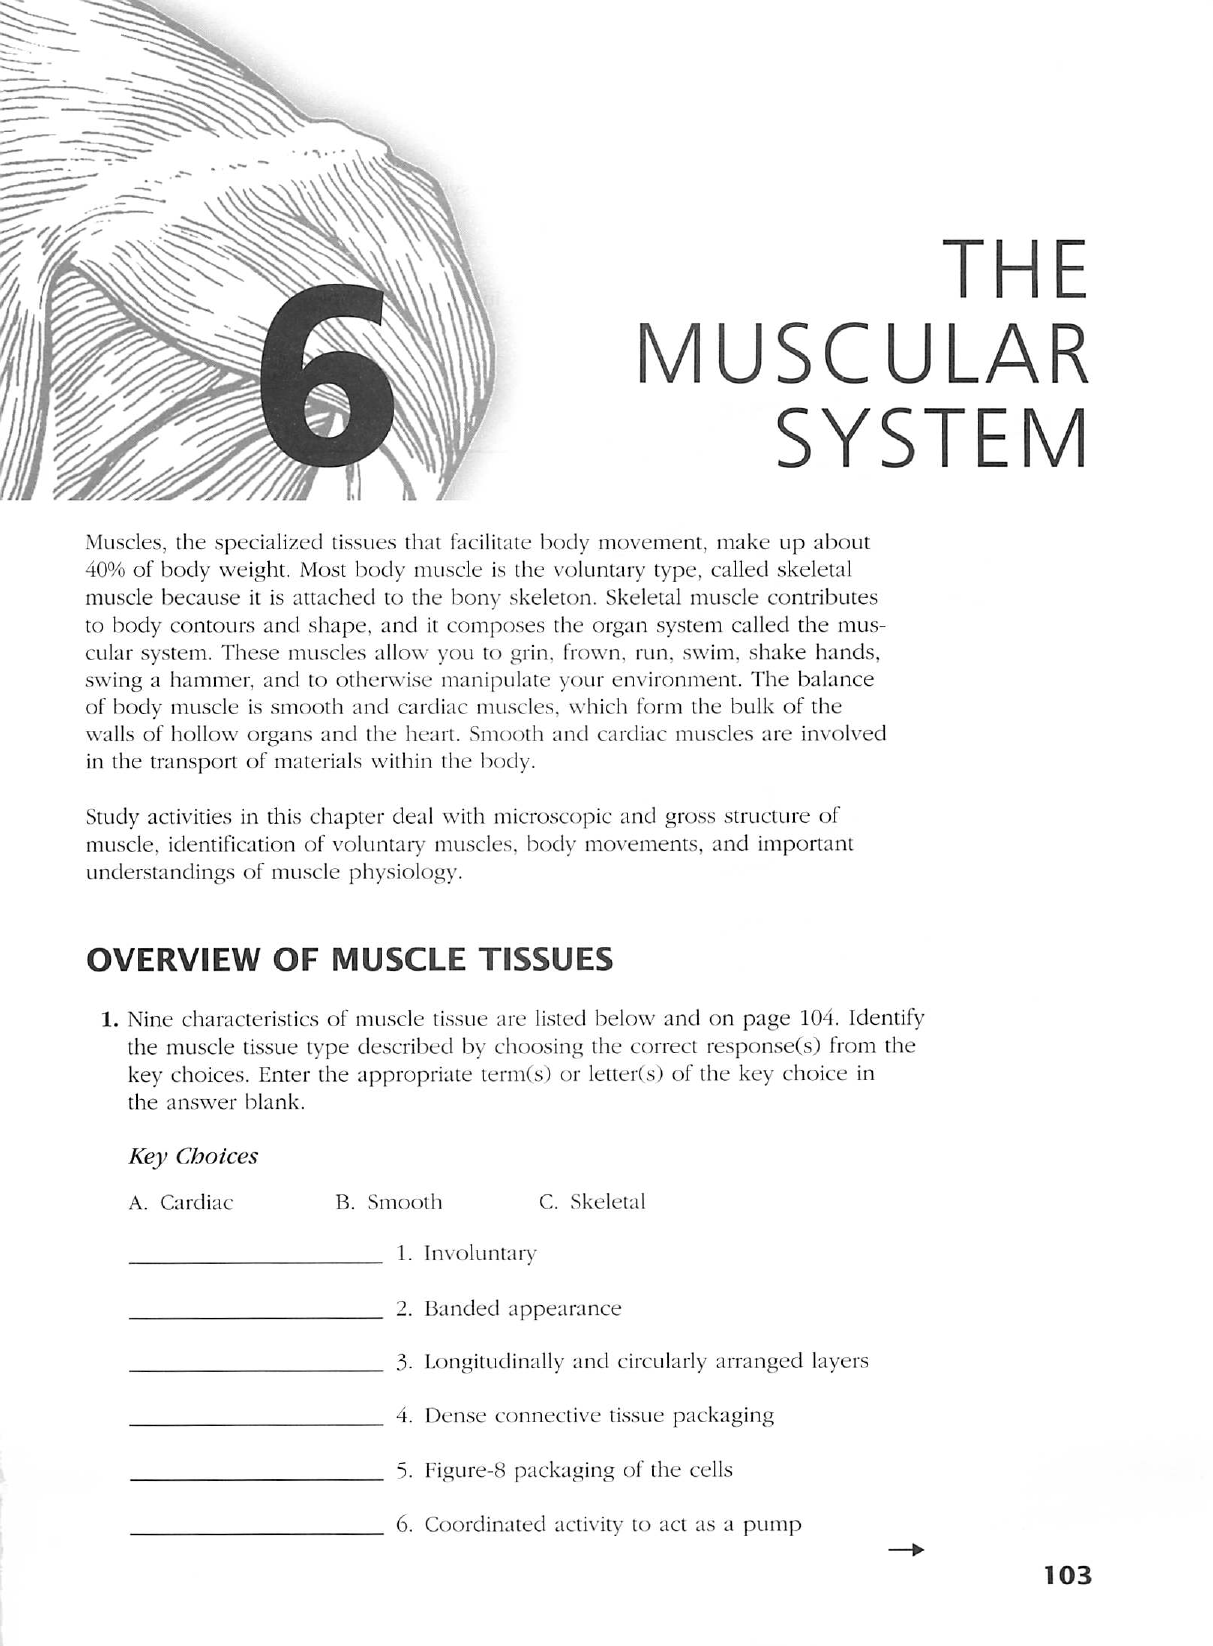 anatomy and physiology coloring workbook chapter 6 answers the muscular system coloring page. Black Bedroom Furniture Sets. Home Design Ideas